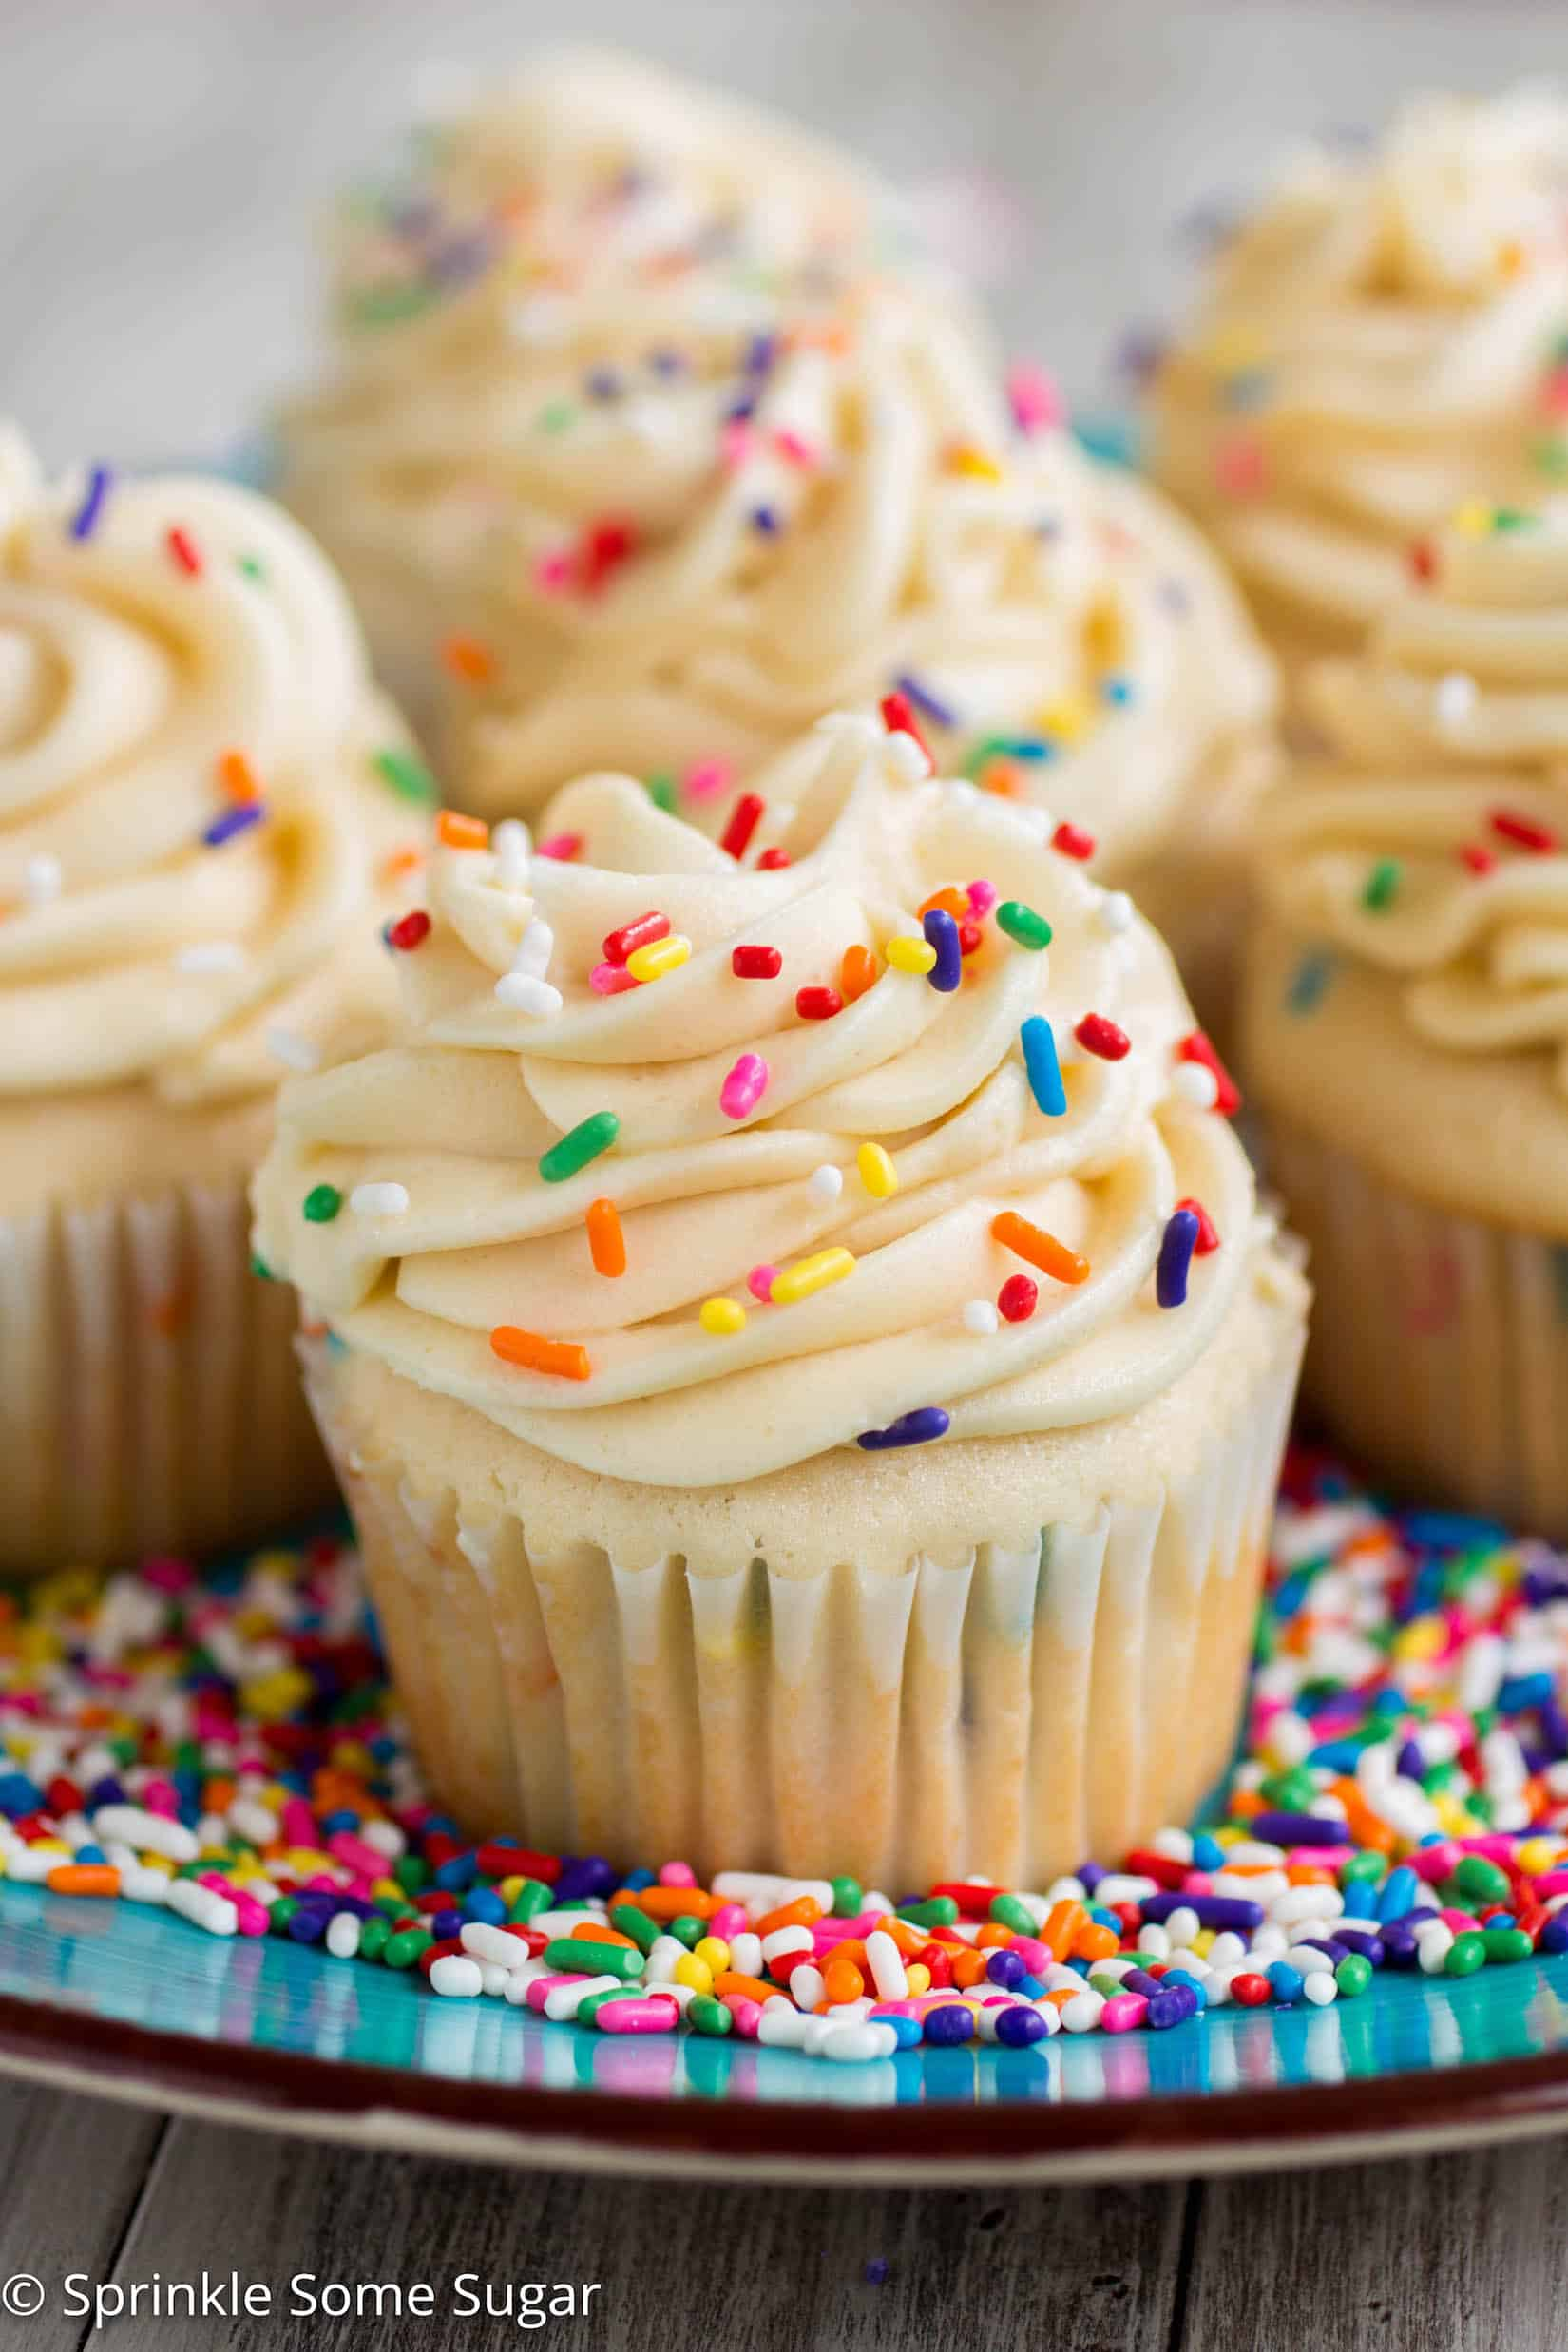 Funfetti Cupcakes with Cake Batter Frosting - My favorite basic fluffy vanilla cupcakes chock full of sprinkles and topped with a creamy cake batter frosting!